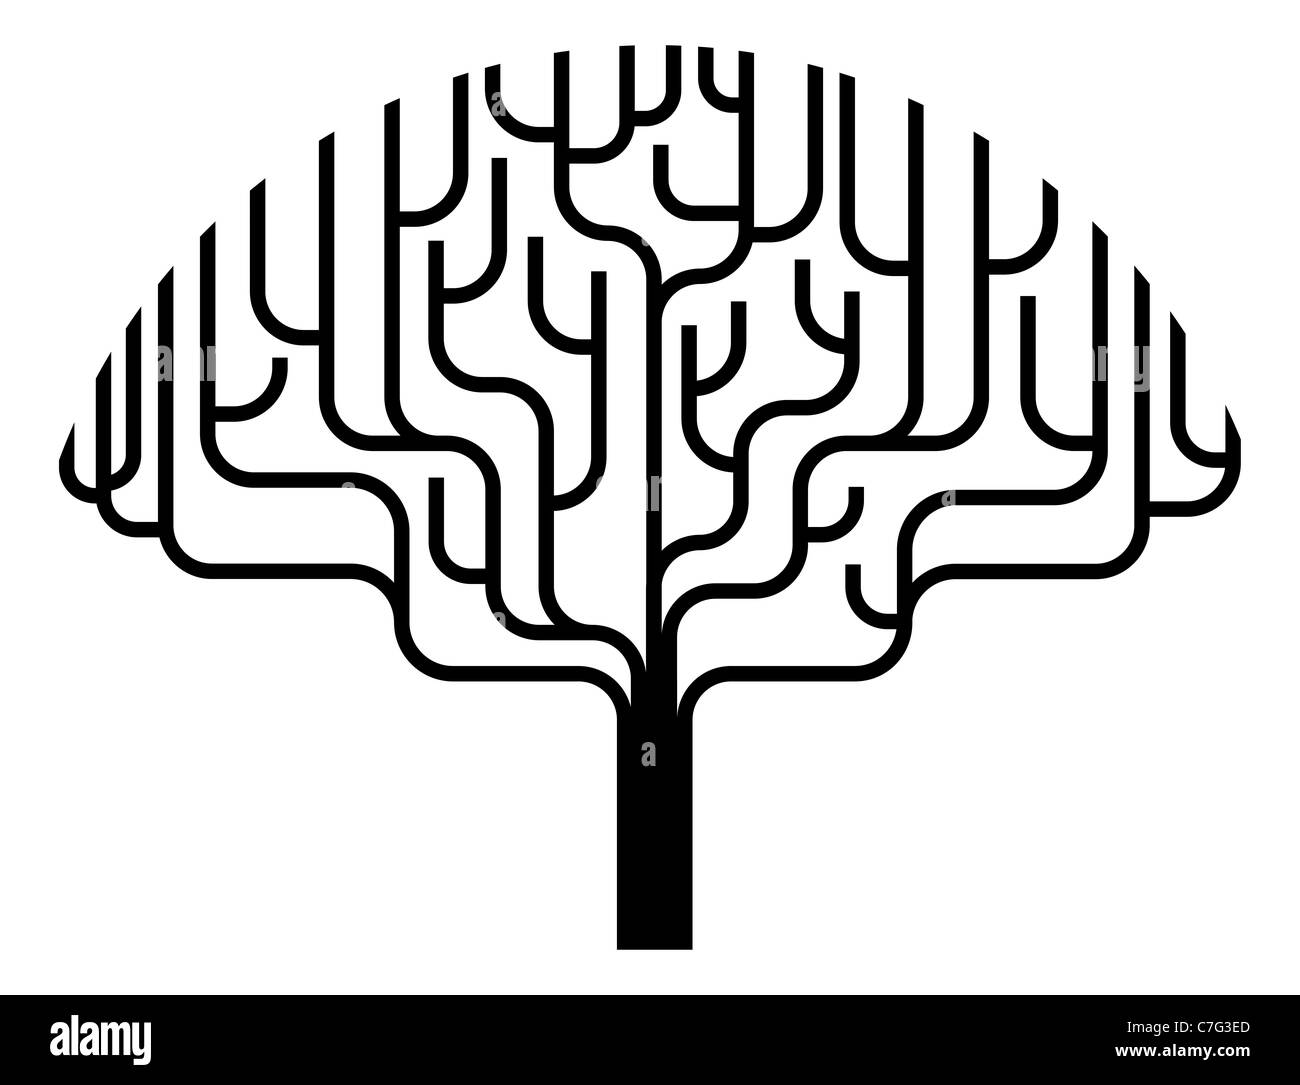 Abstract stylised tree silhouette illustration design element. - Stock Image